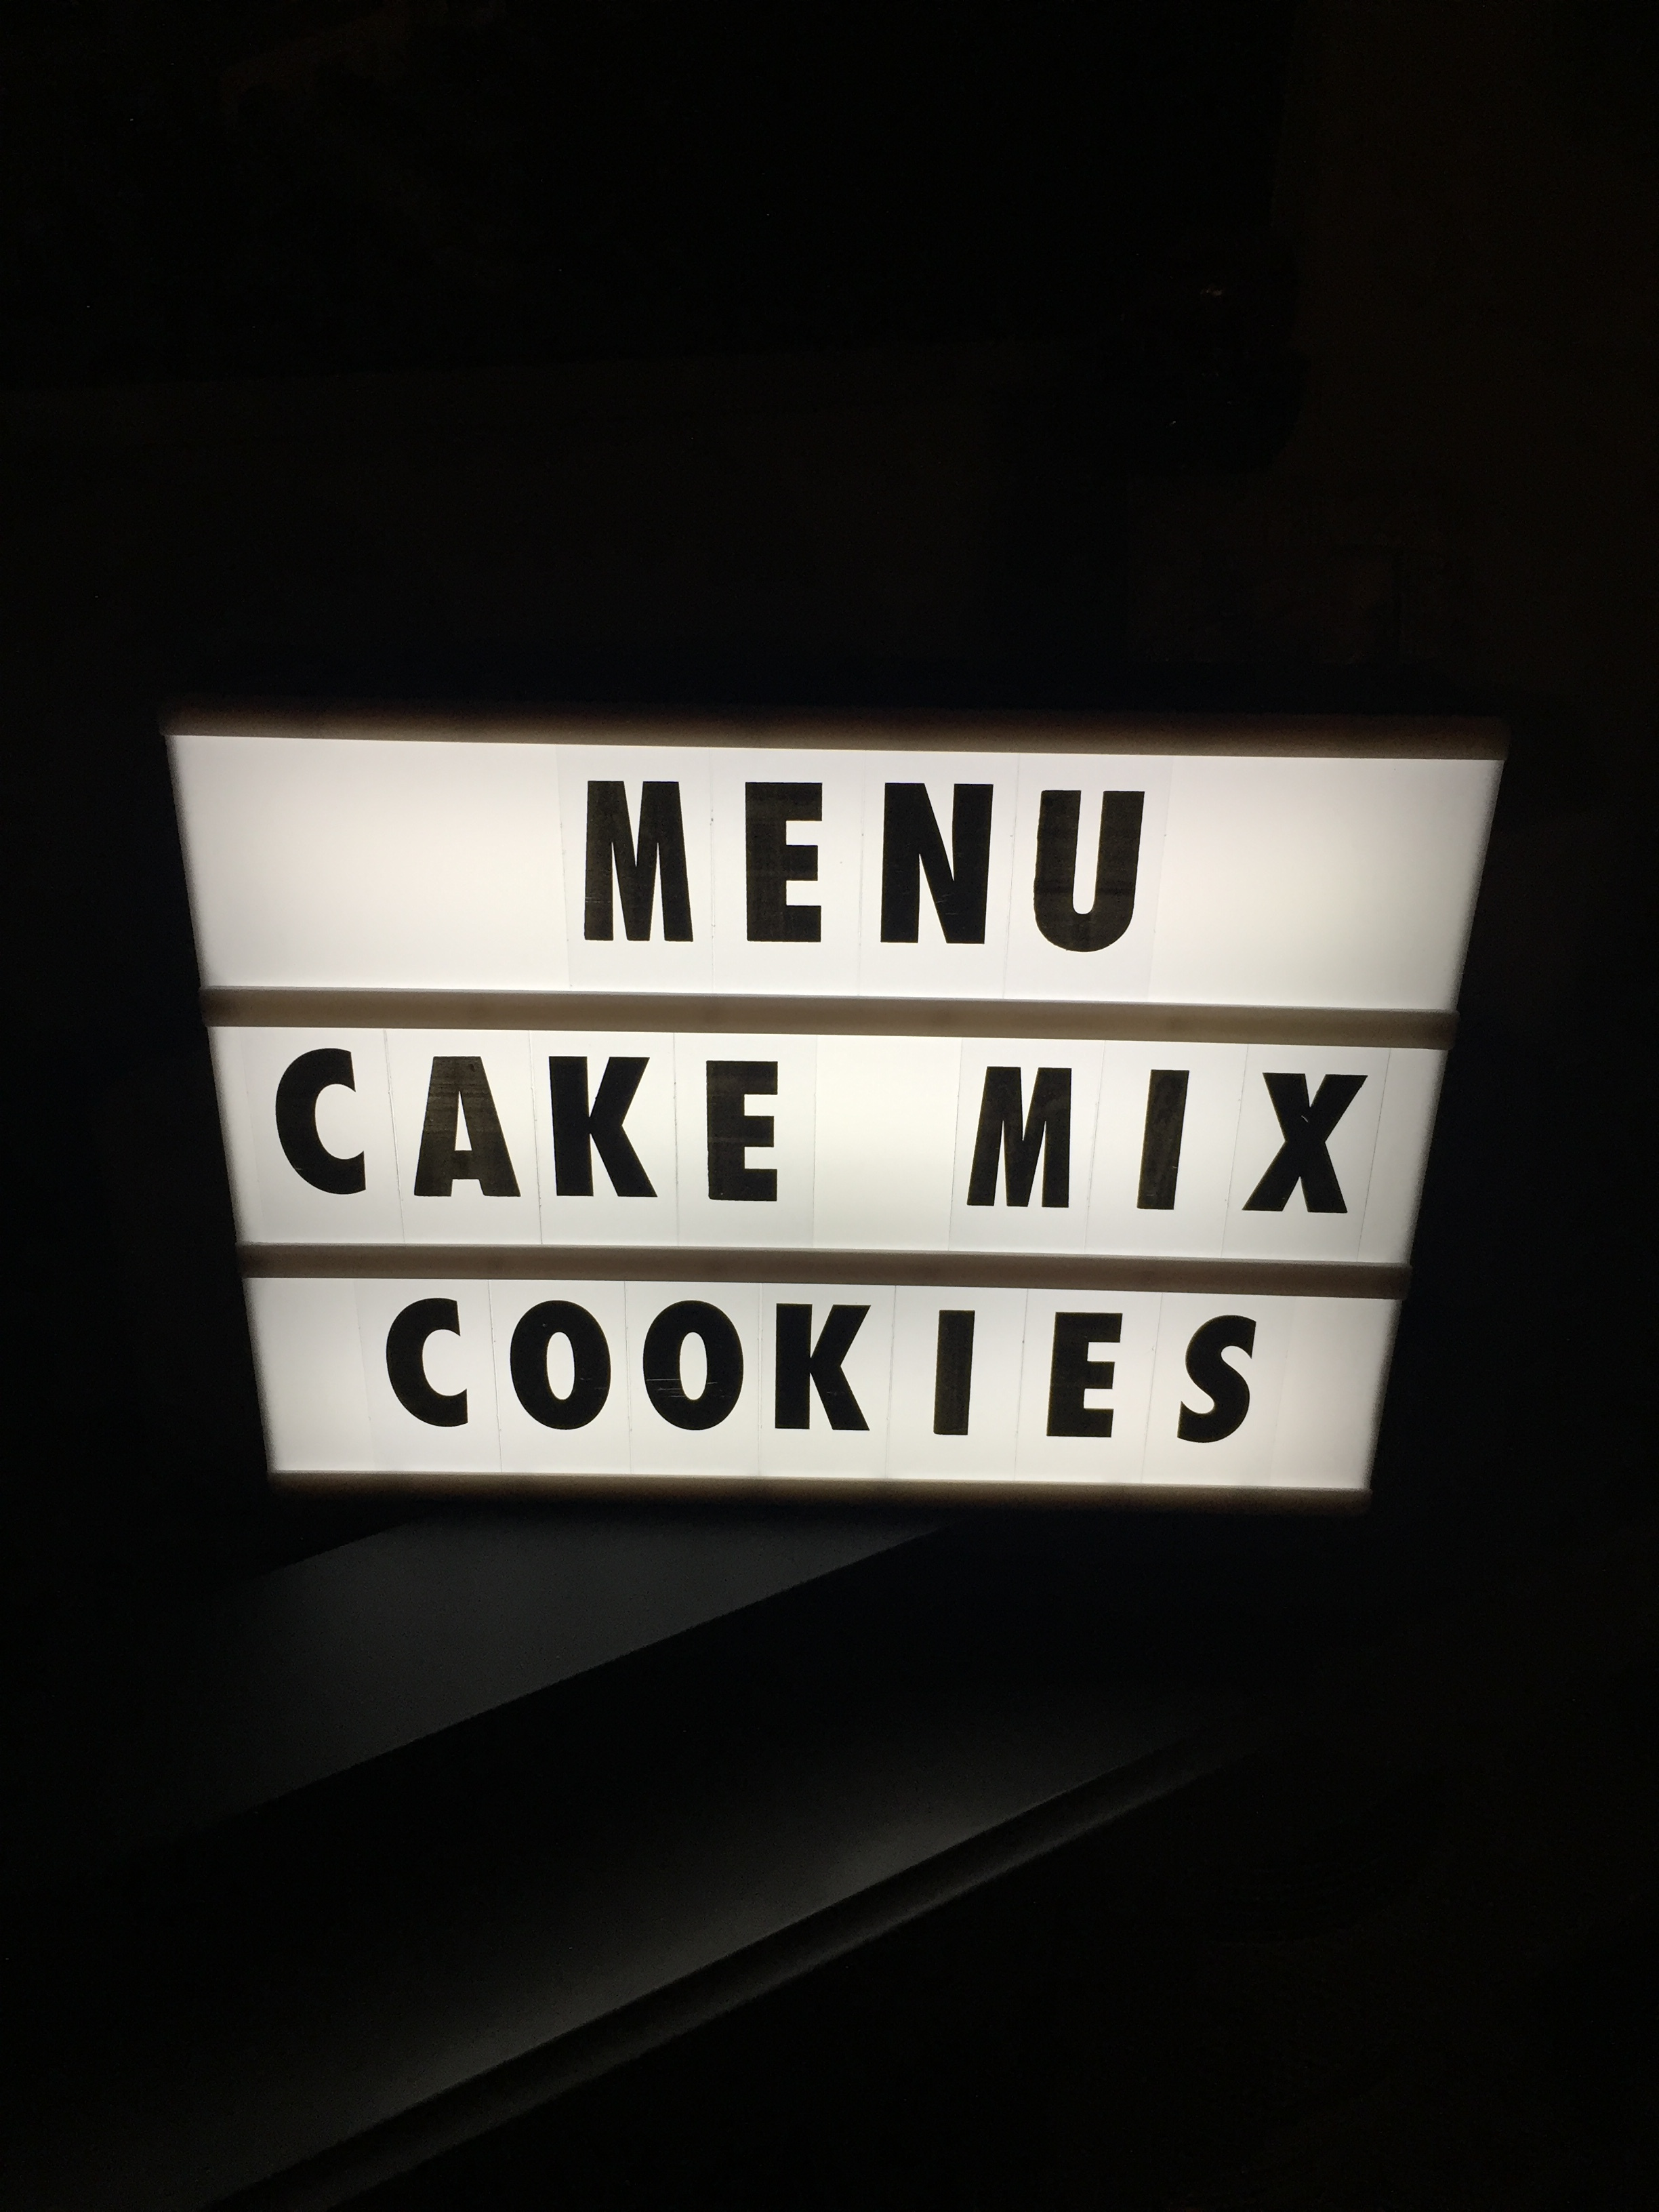 49CakeMixCookies1.JPG